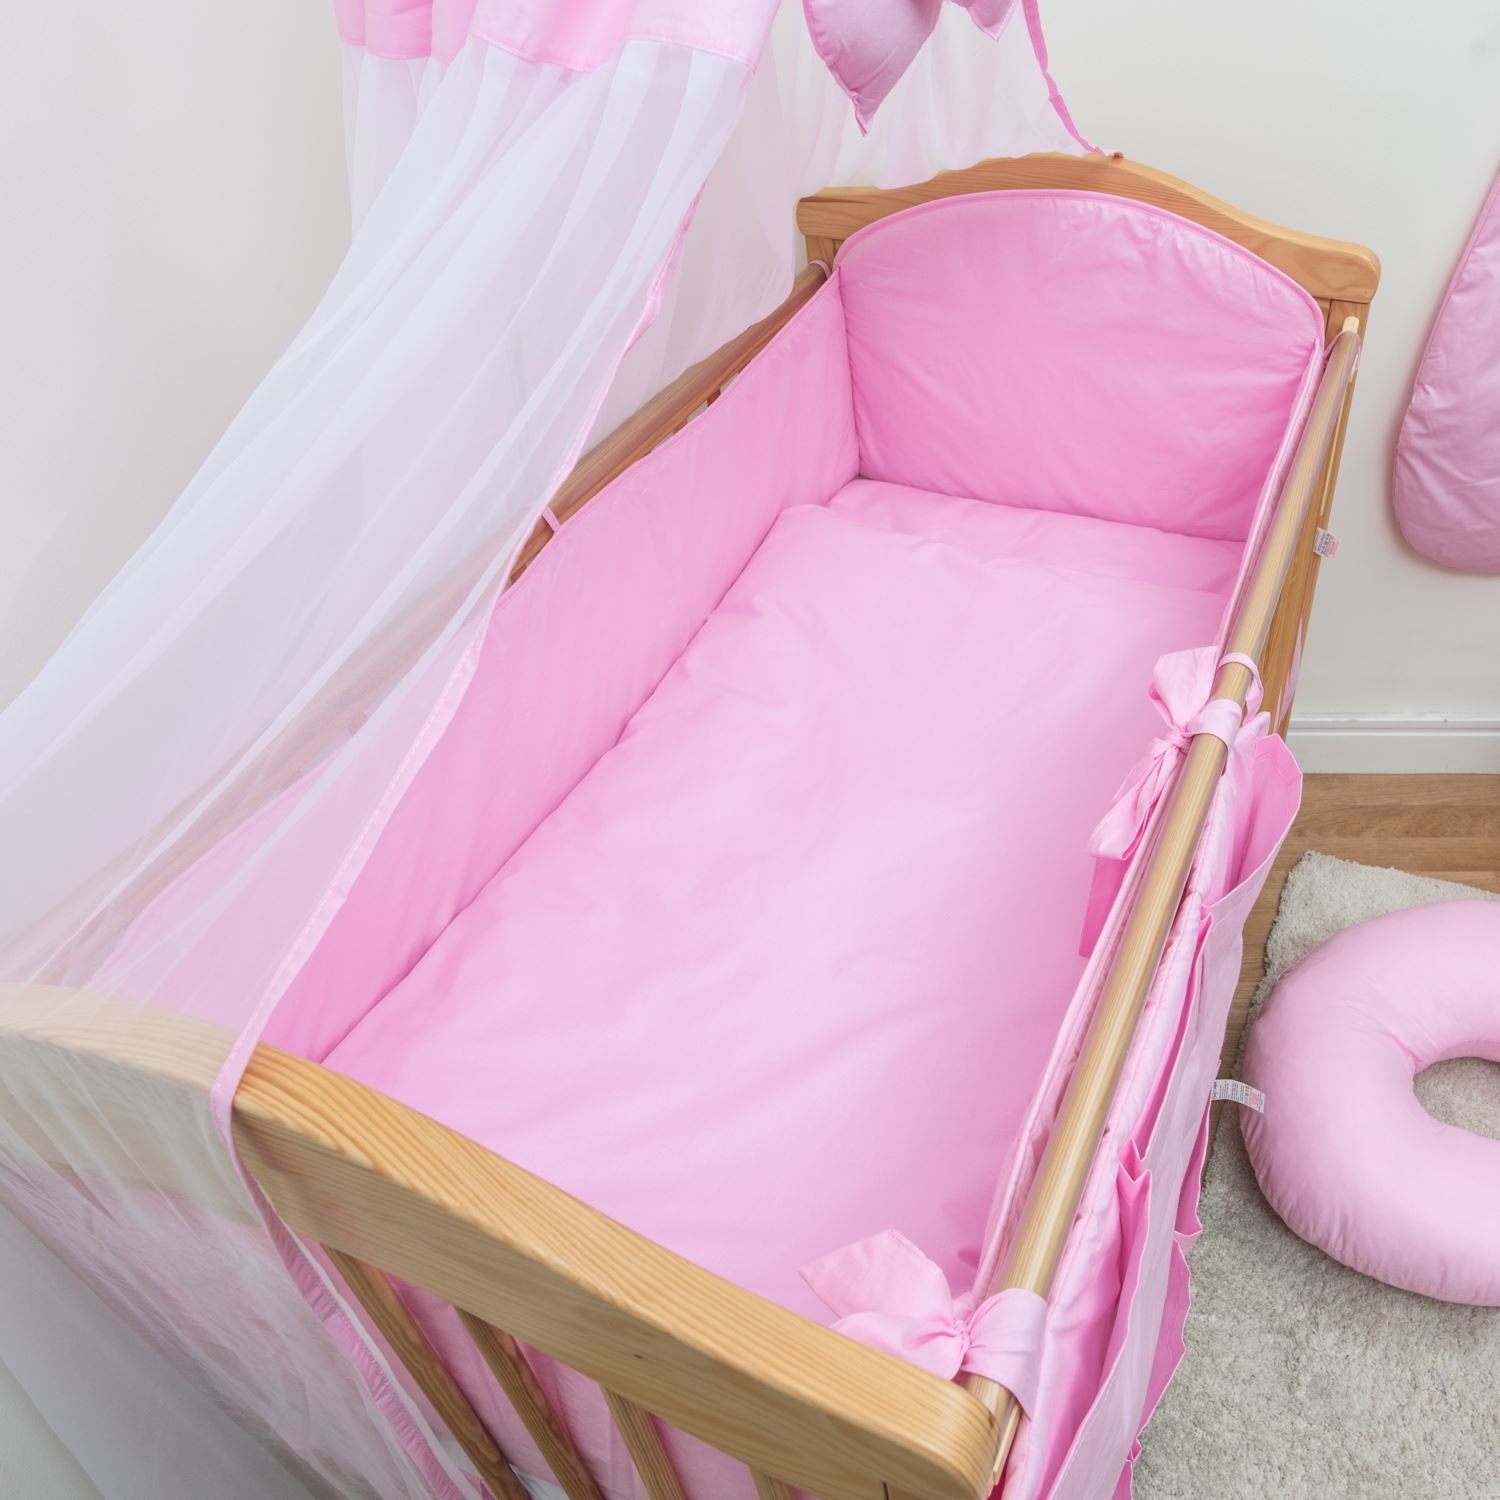 all round cot cot bed bumper 4 sided pads with pattern or. Black Bedroom Furniture Sets. Home Design Ideas